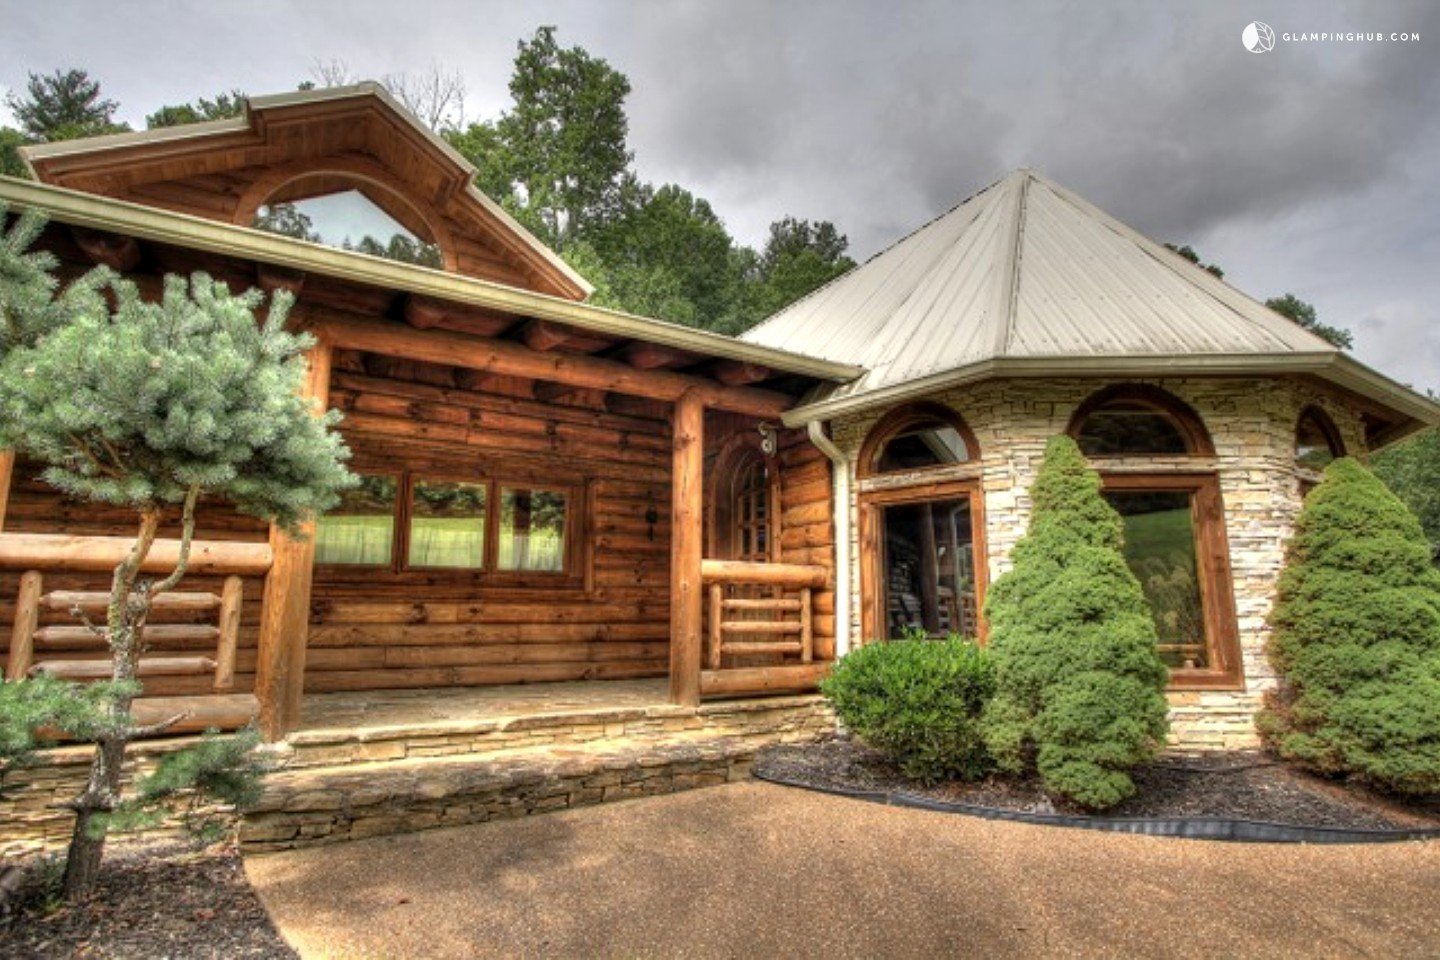 Luxury cabin rental near the great smoky mountains for Rent cabin smoky mountains